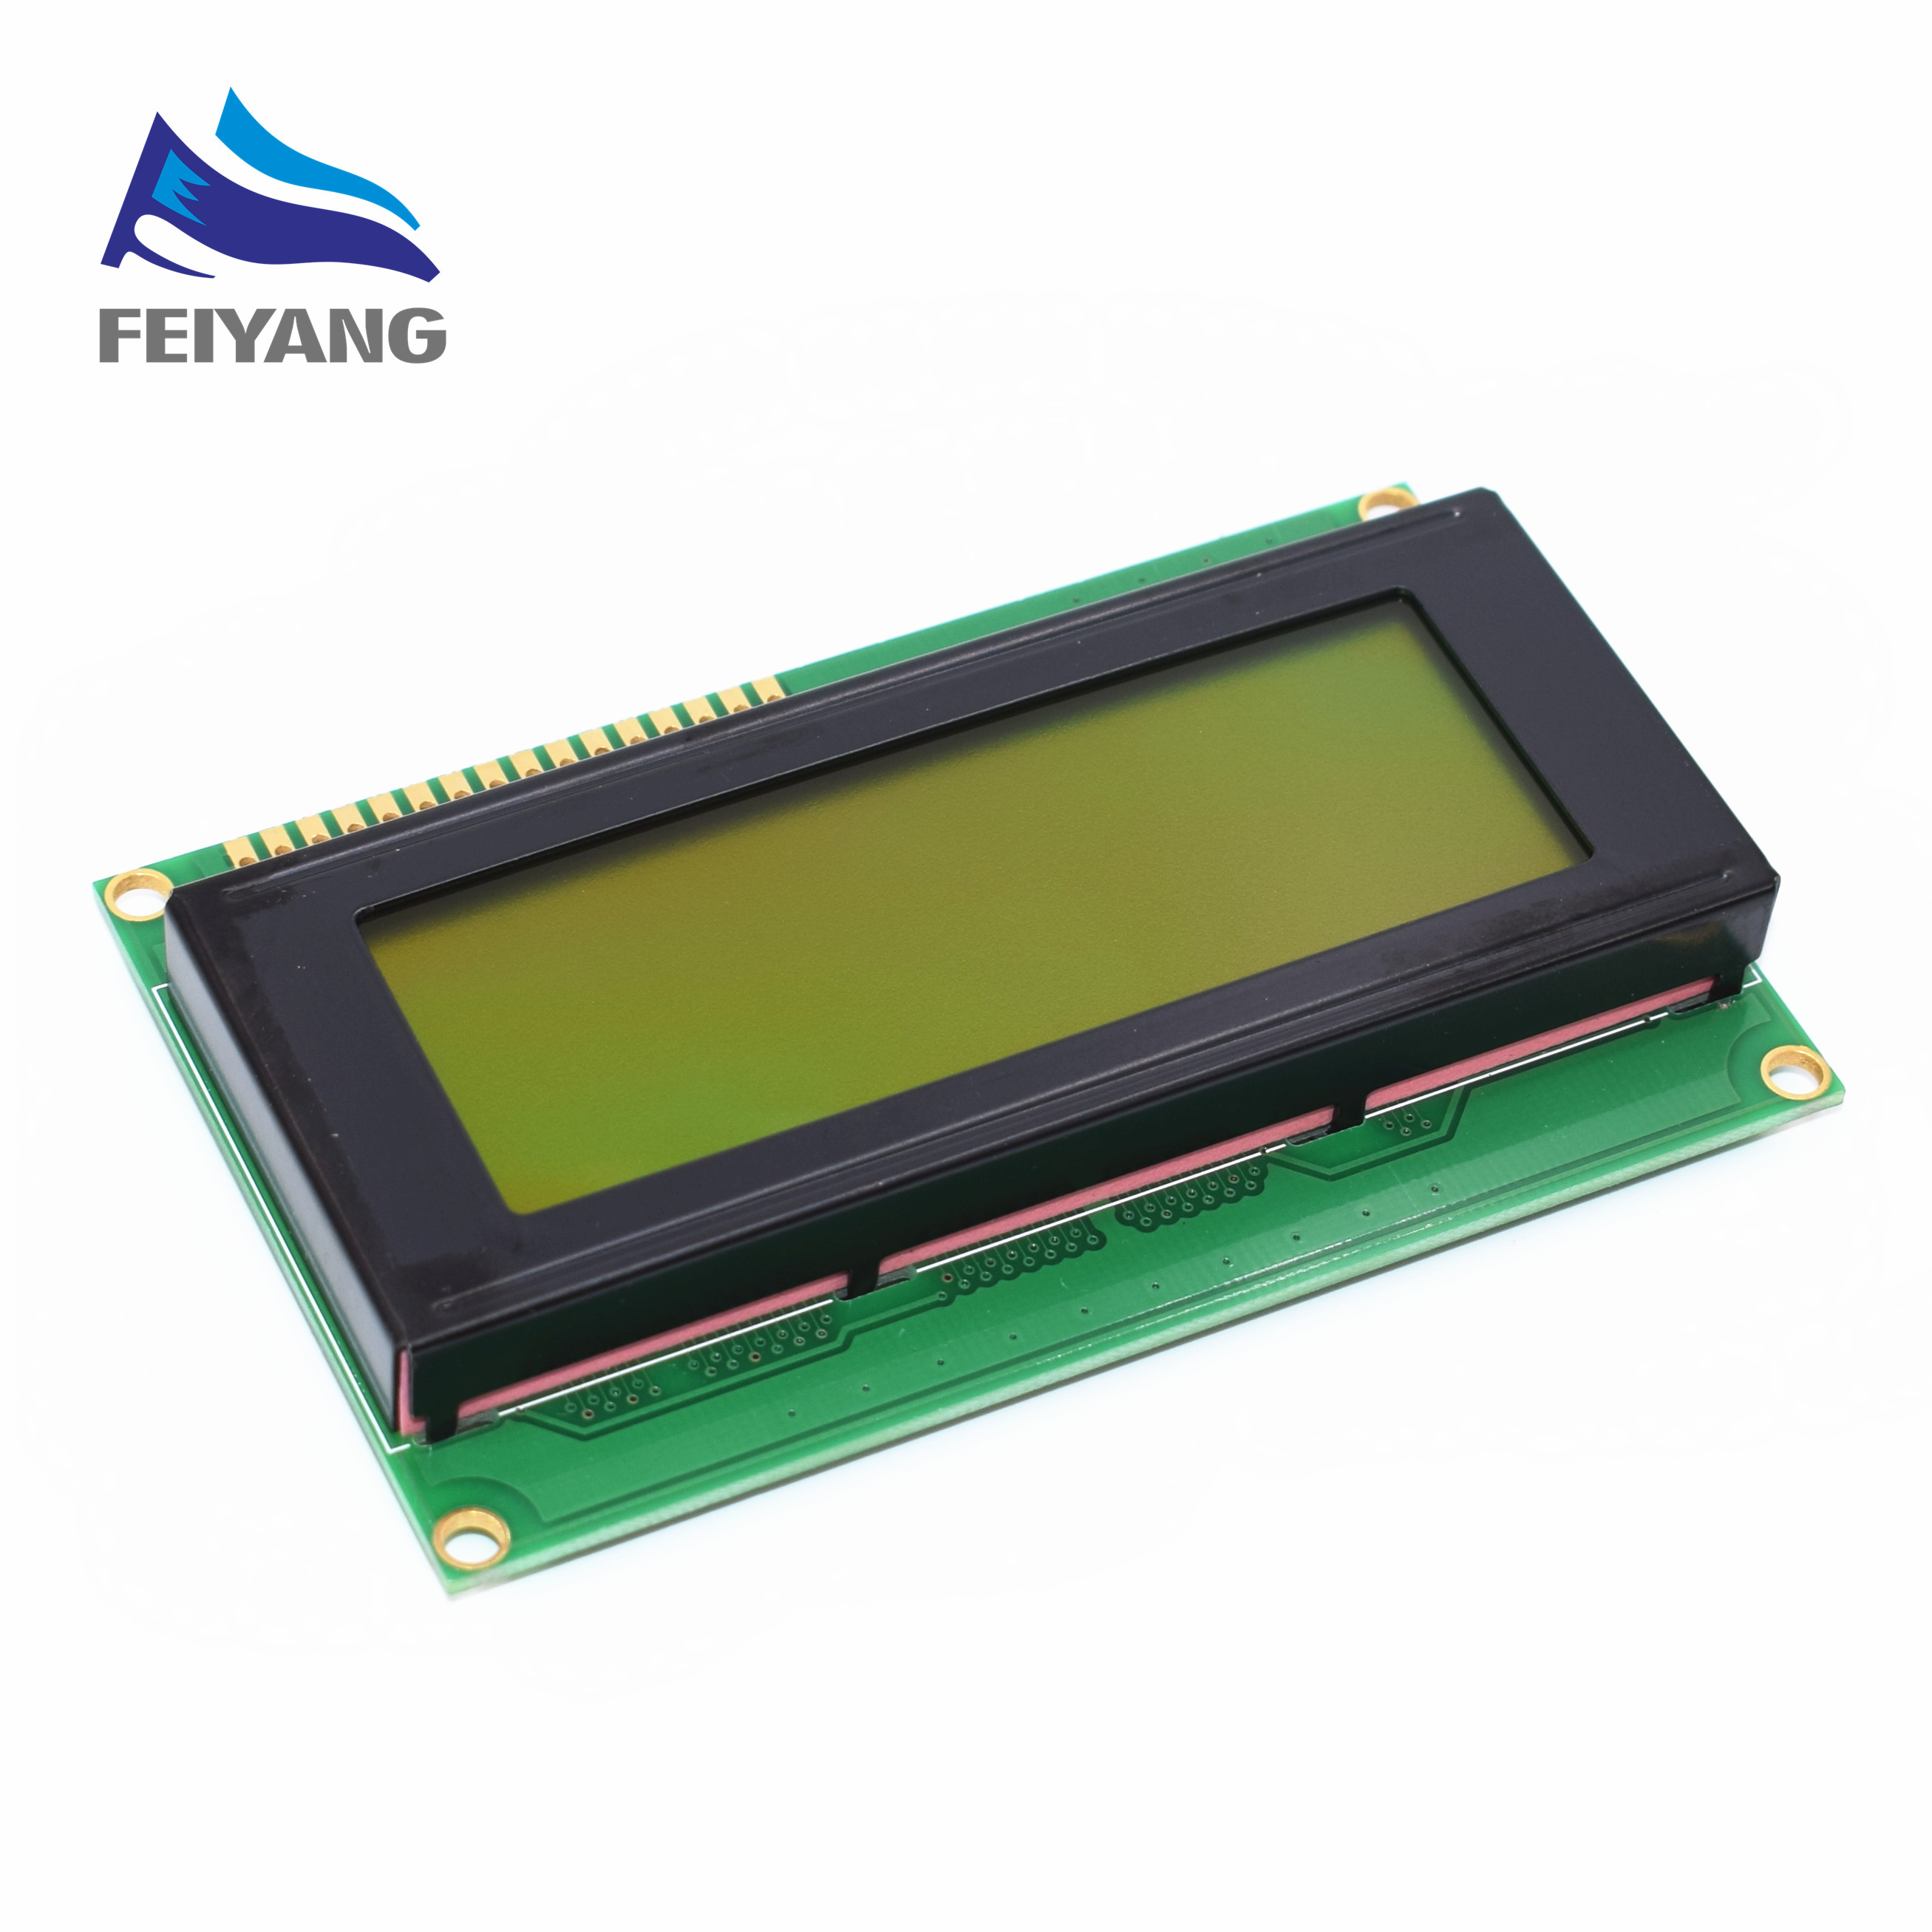 1-pcs-samiore-robot-board-lcd-2004-20-4-20x4-lcd-5-v-tela-verde-amarelo-exibicao-lcd2004-lcd-modulo-lcd-2004